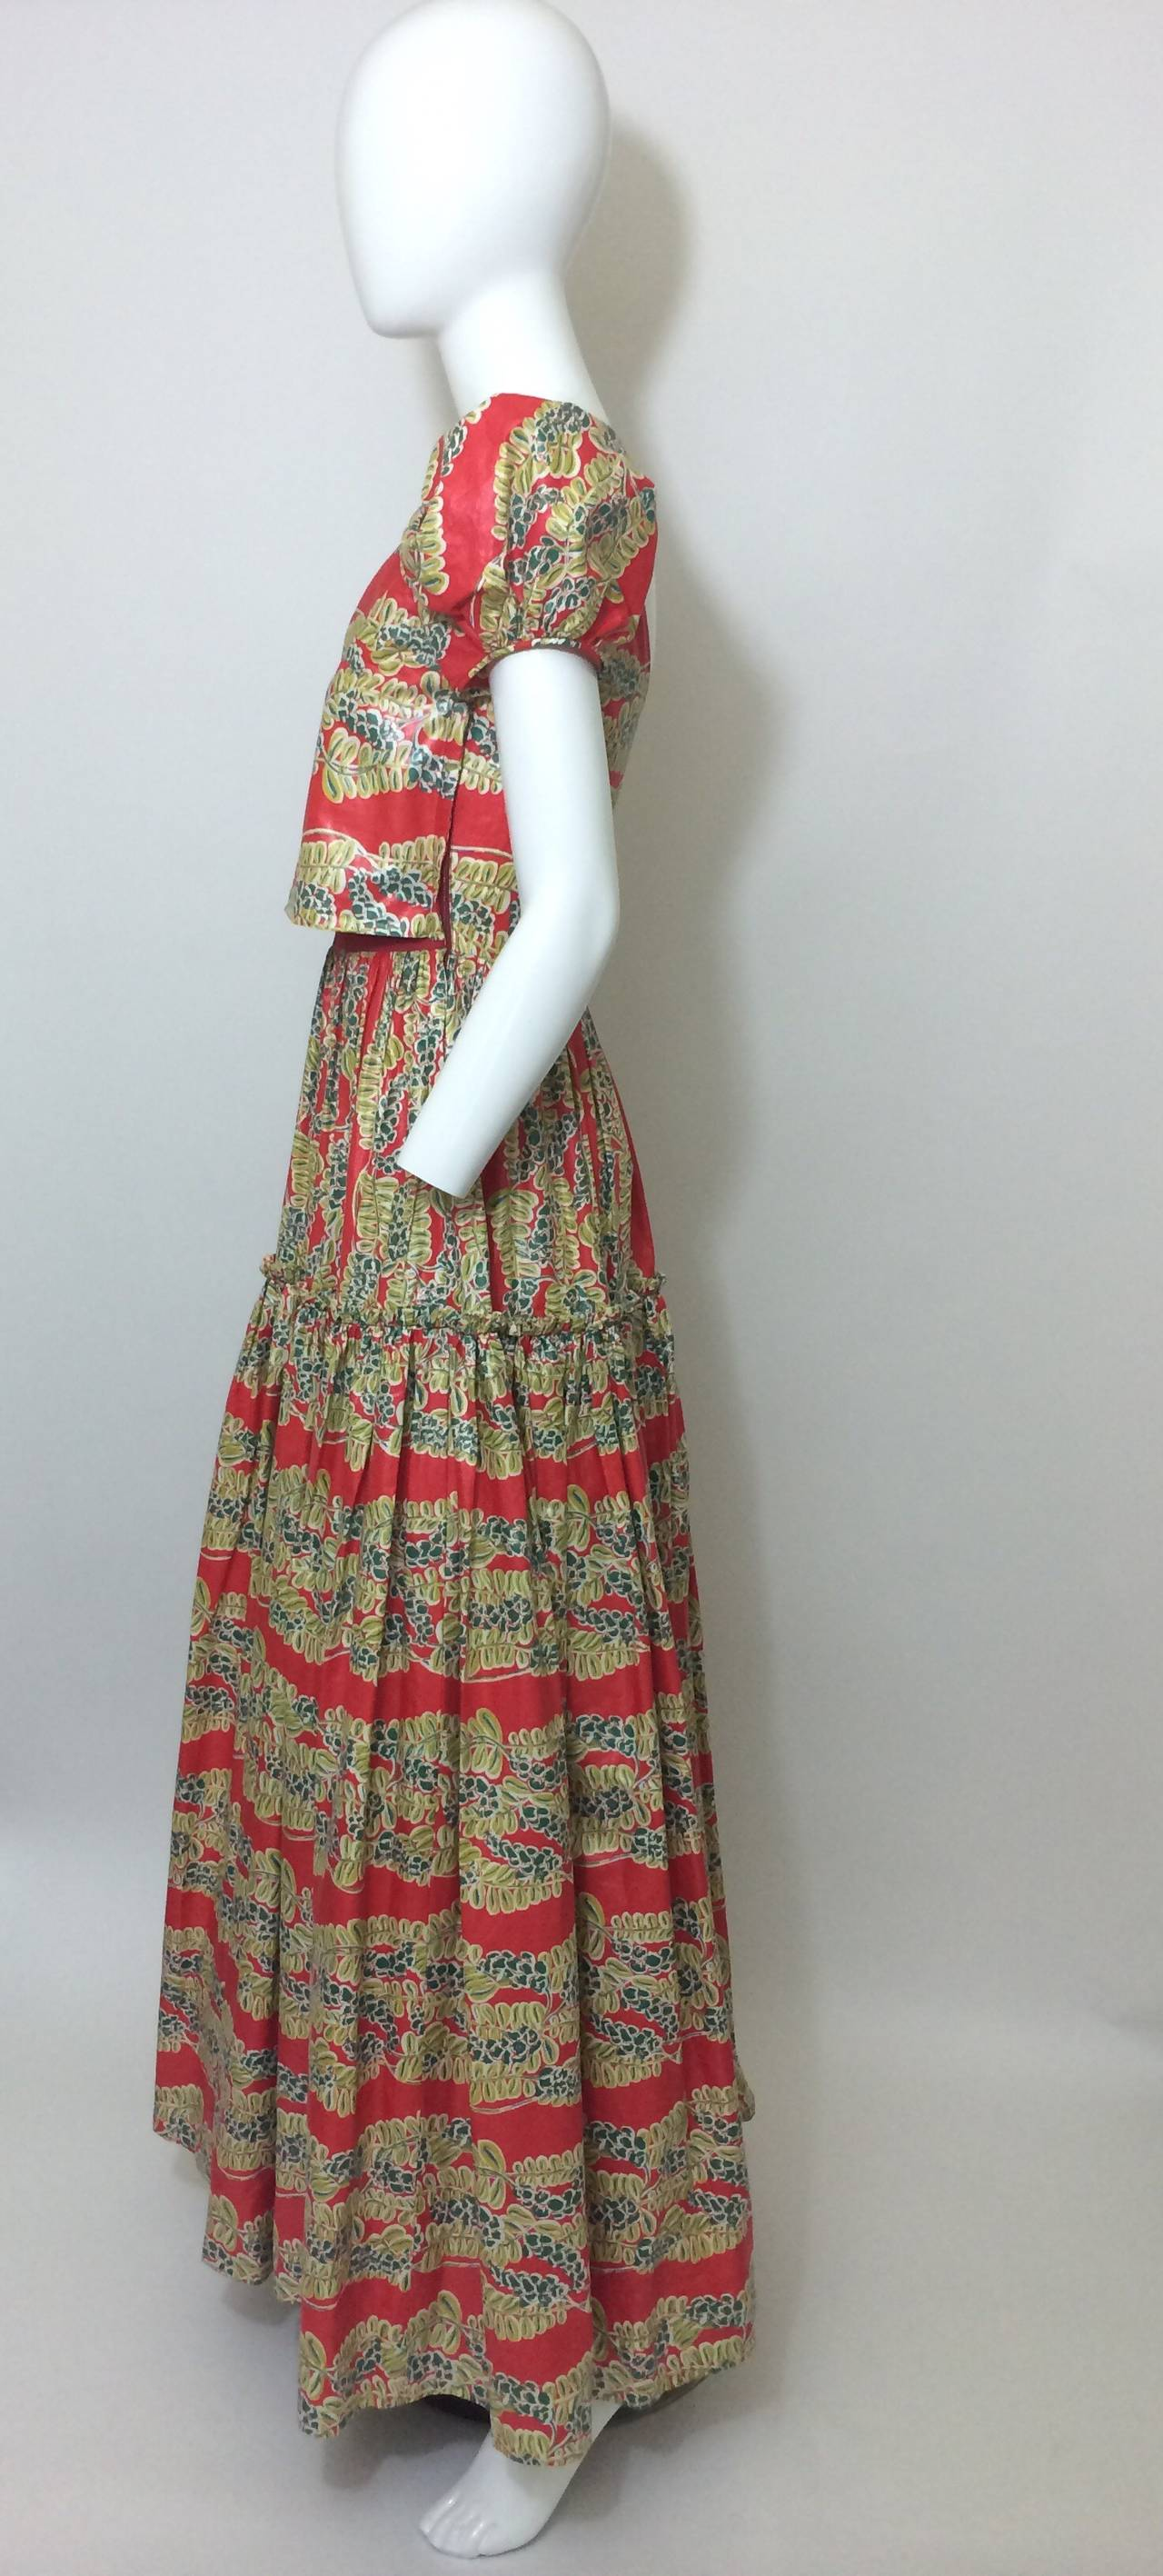 This is a beautiful full length maxi dress from the 1940's. The fabric is a polished cotton which has a soft touch and a beautiful sheen. Featuring a square neckline and dainty pouf sleeves. The front bodice is lined with a stretch jersey fabric